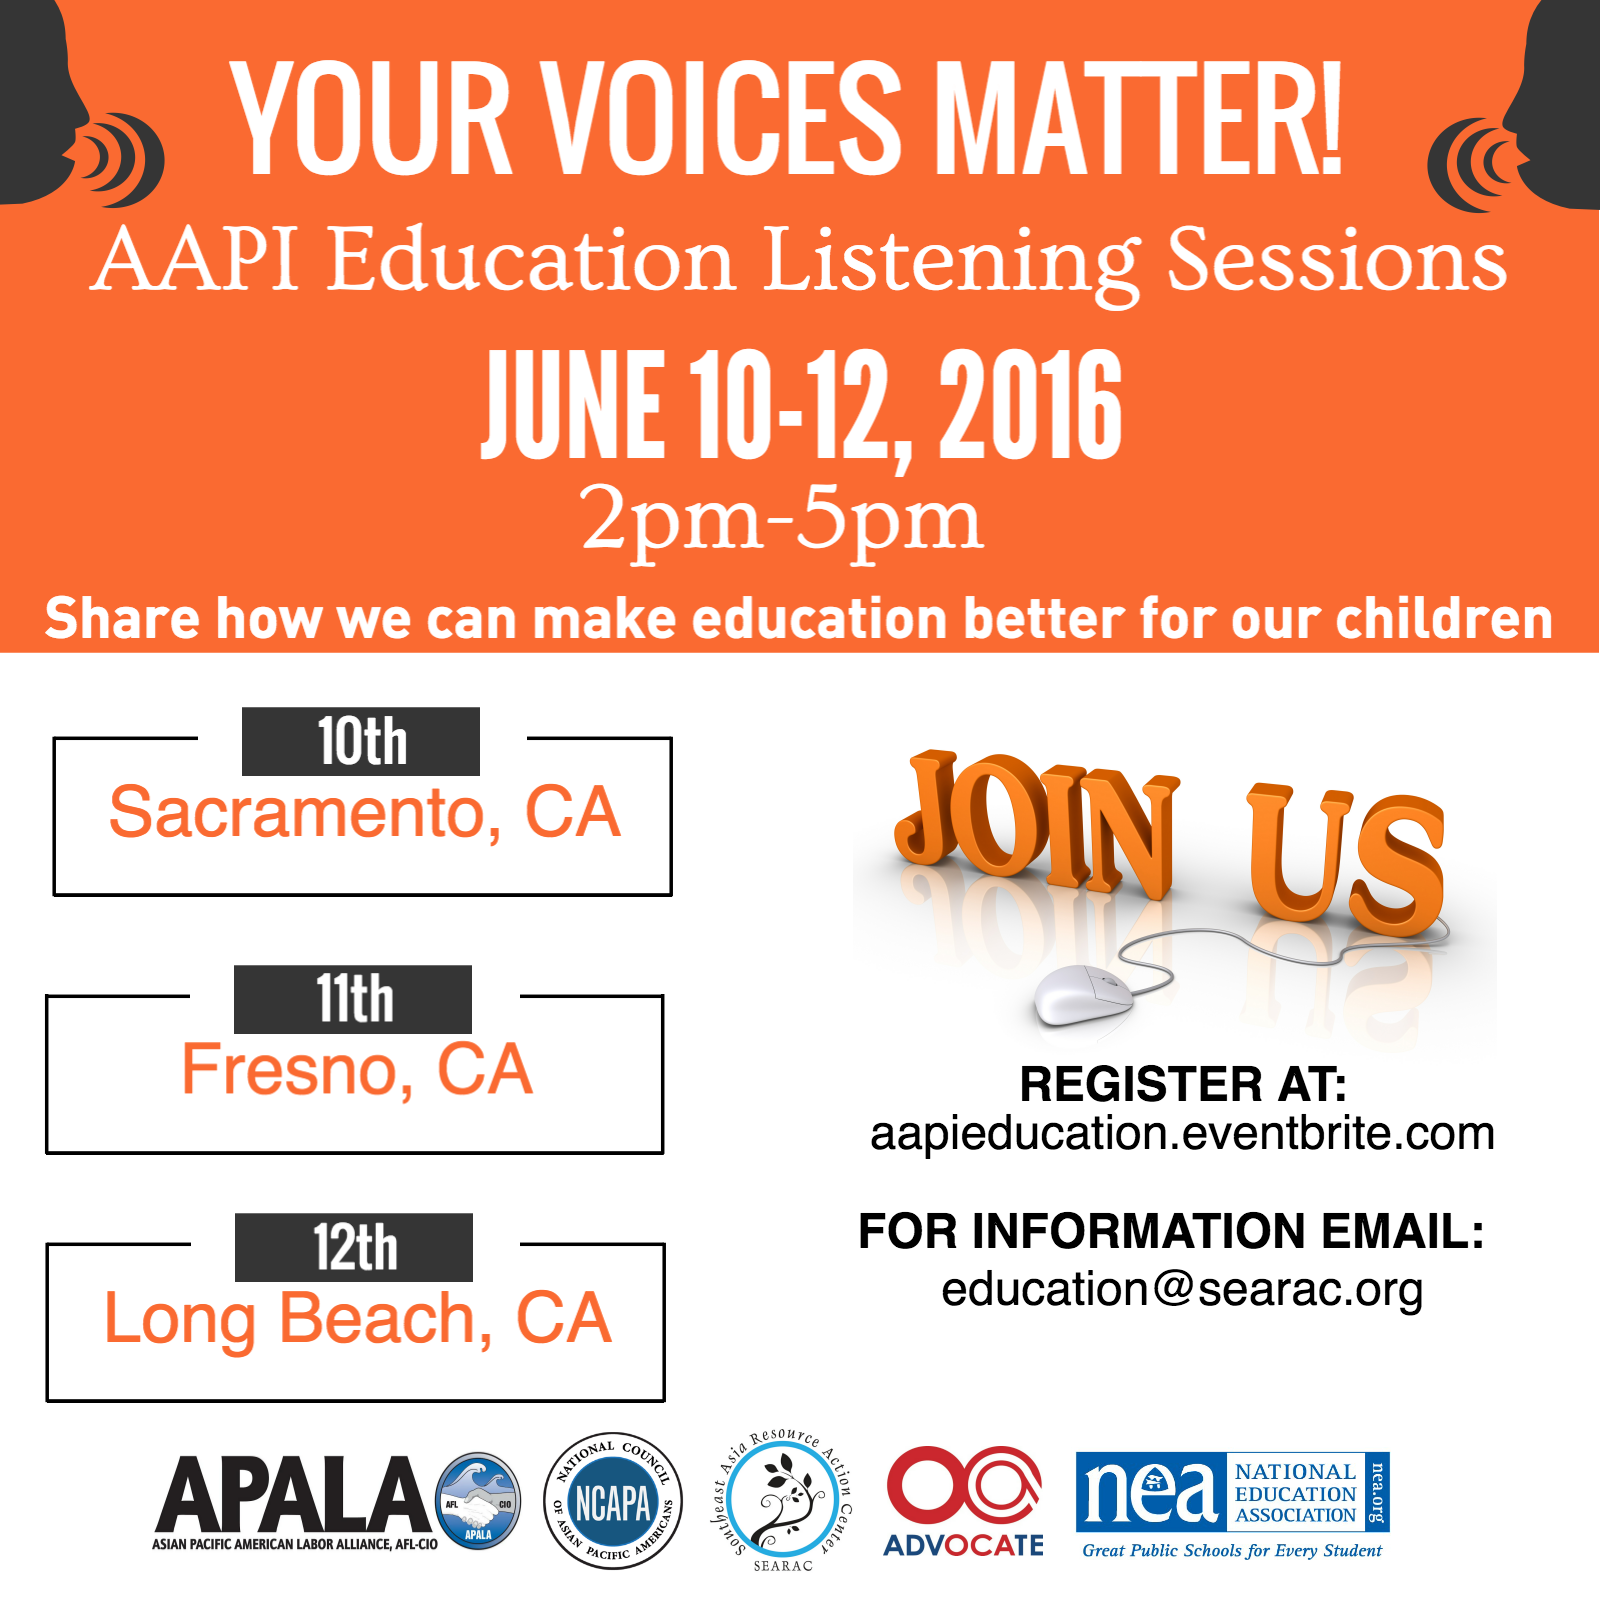 AAPI_Ed_Listening_Sessions_Flyer.png